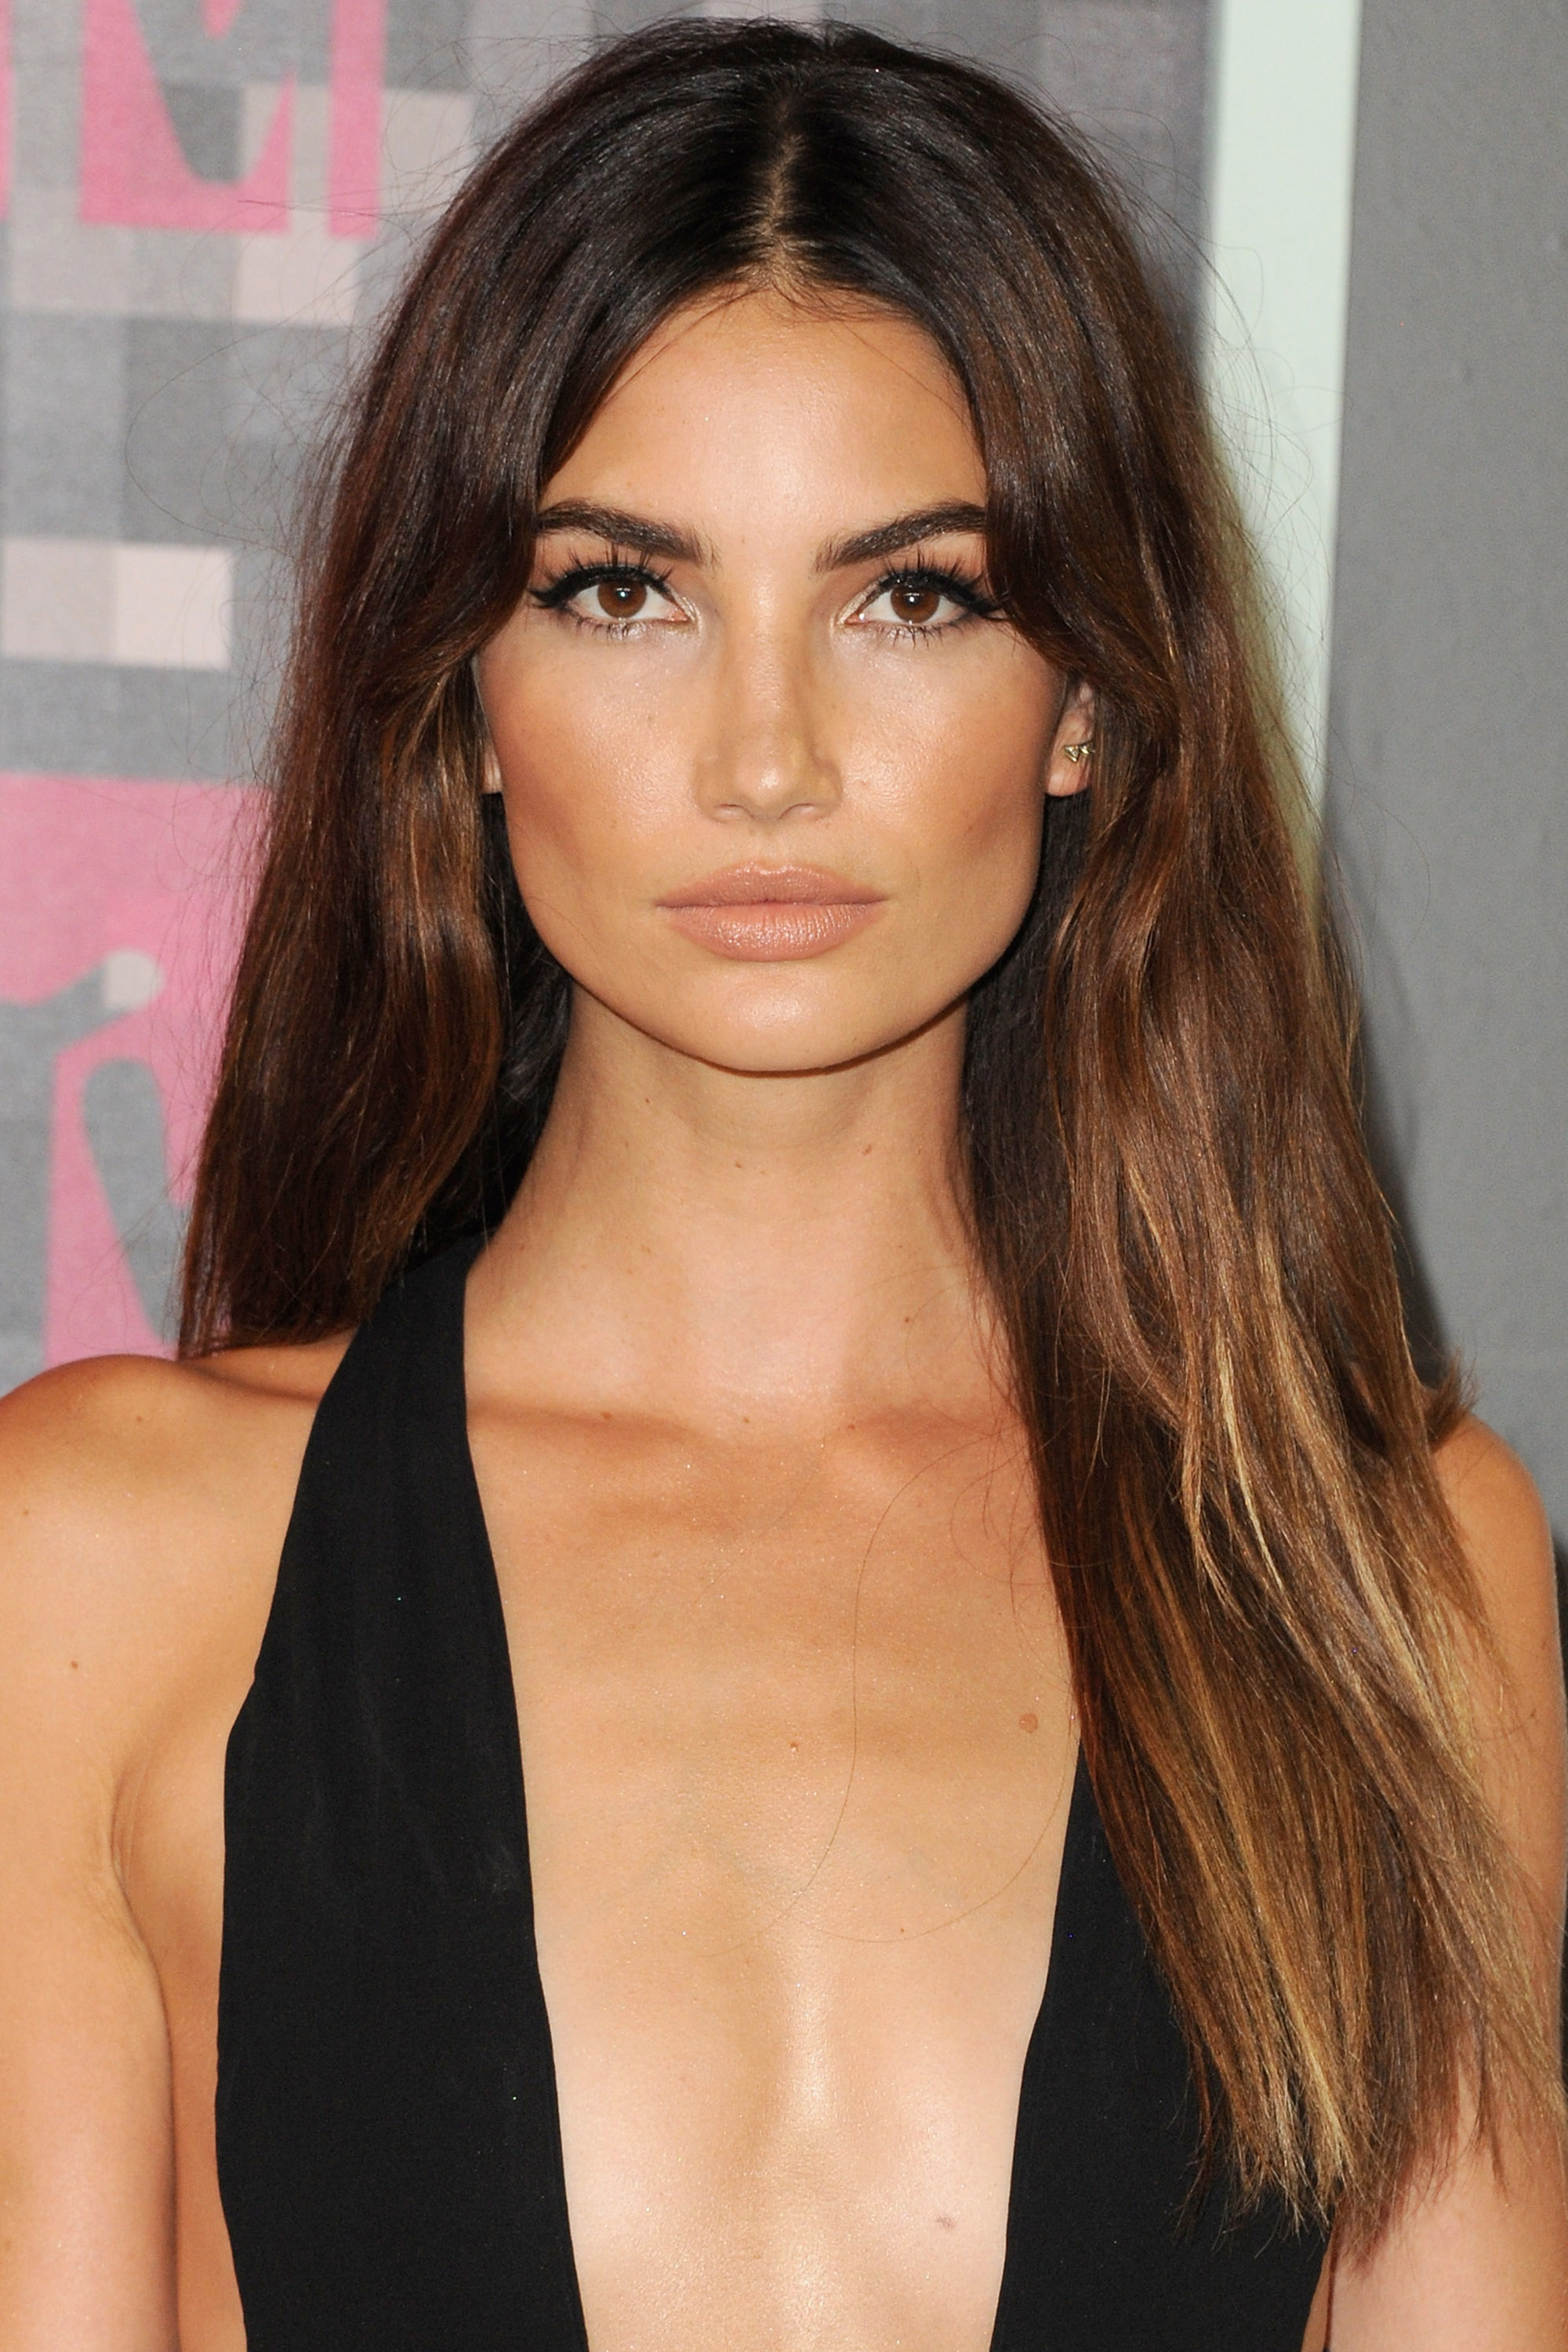 Tremendous 28 Long Hairstyles And Haircuts 2017 Best Hairstyles For Long Hair Hairstyle Inspiration Daily Dogsangcom